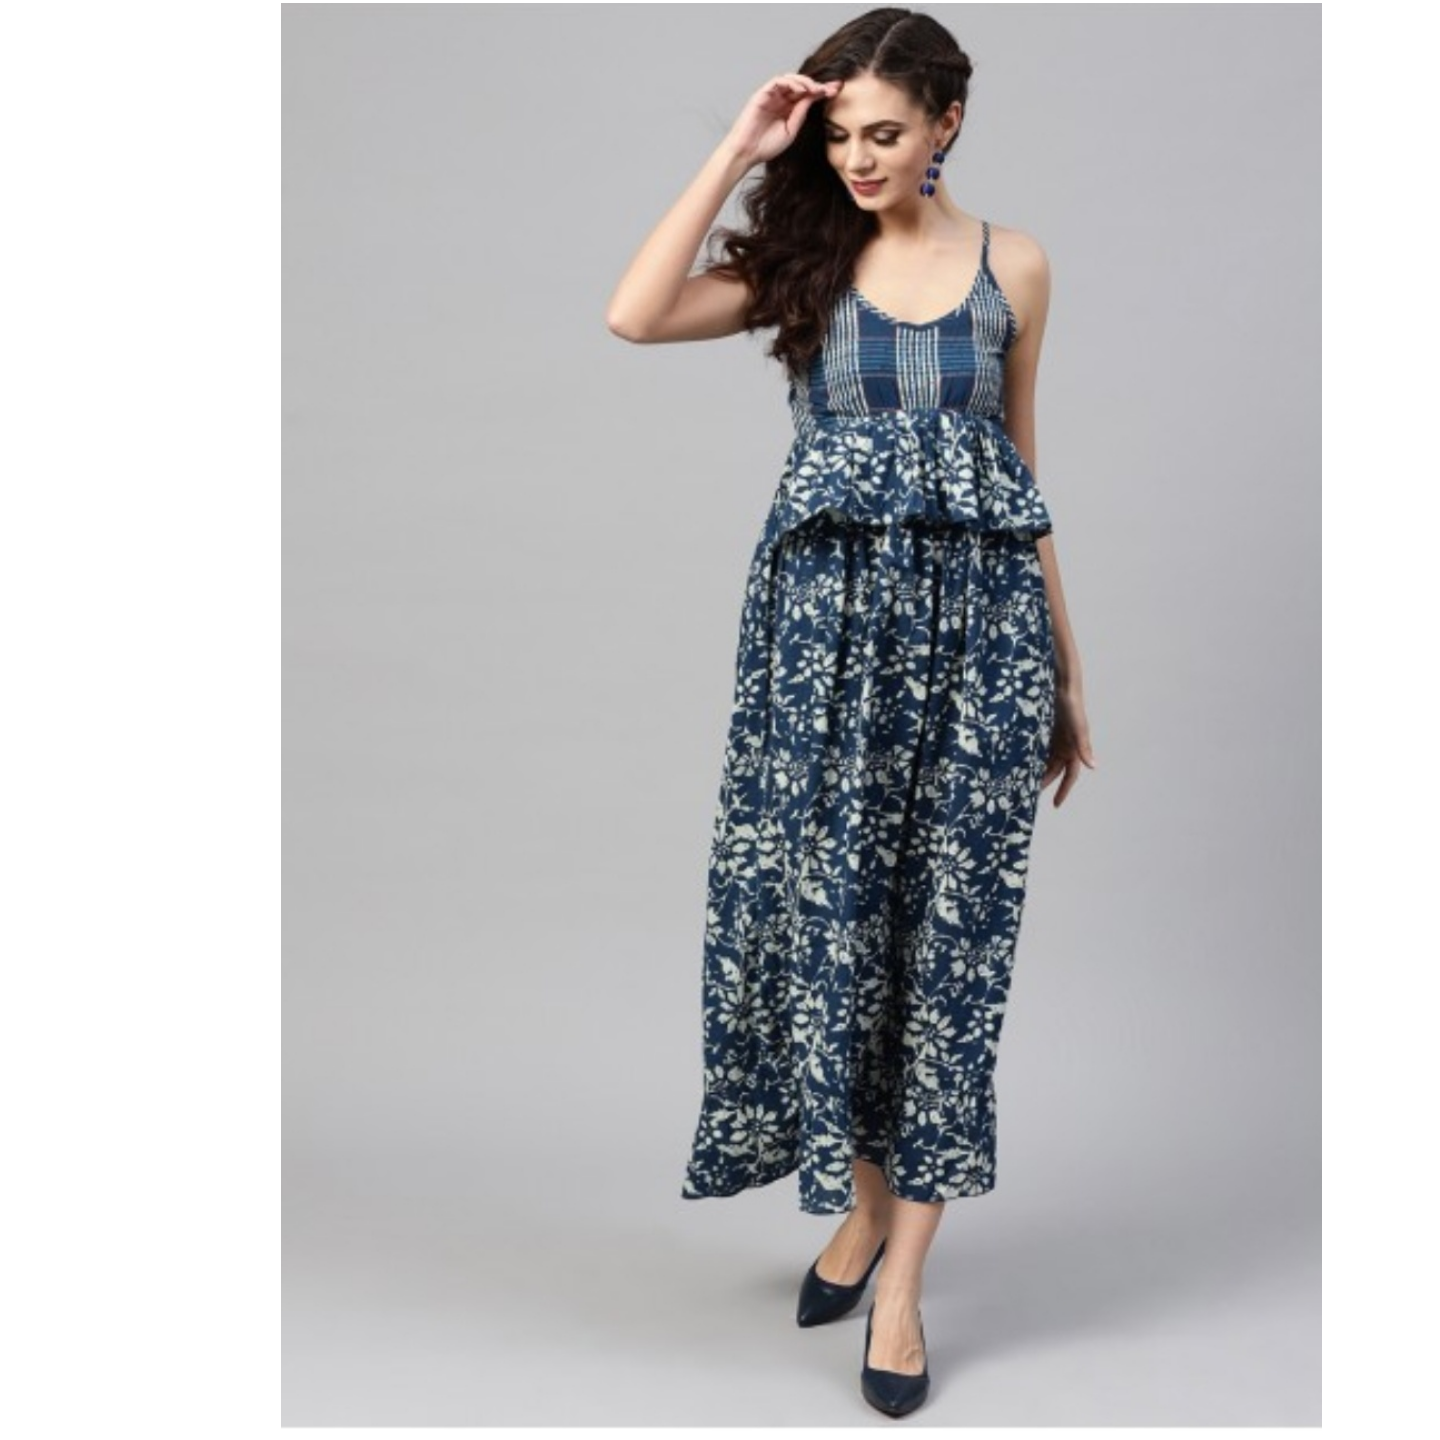 Blue & White Floral Printed Maxi